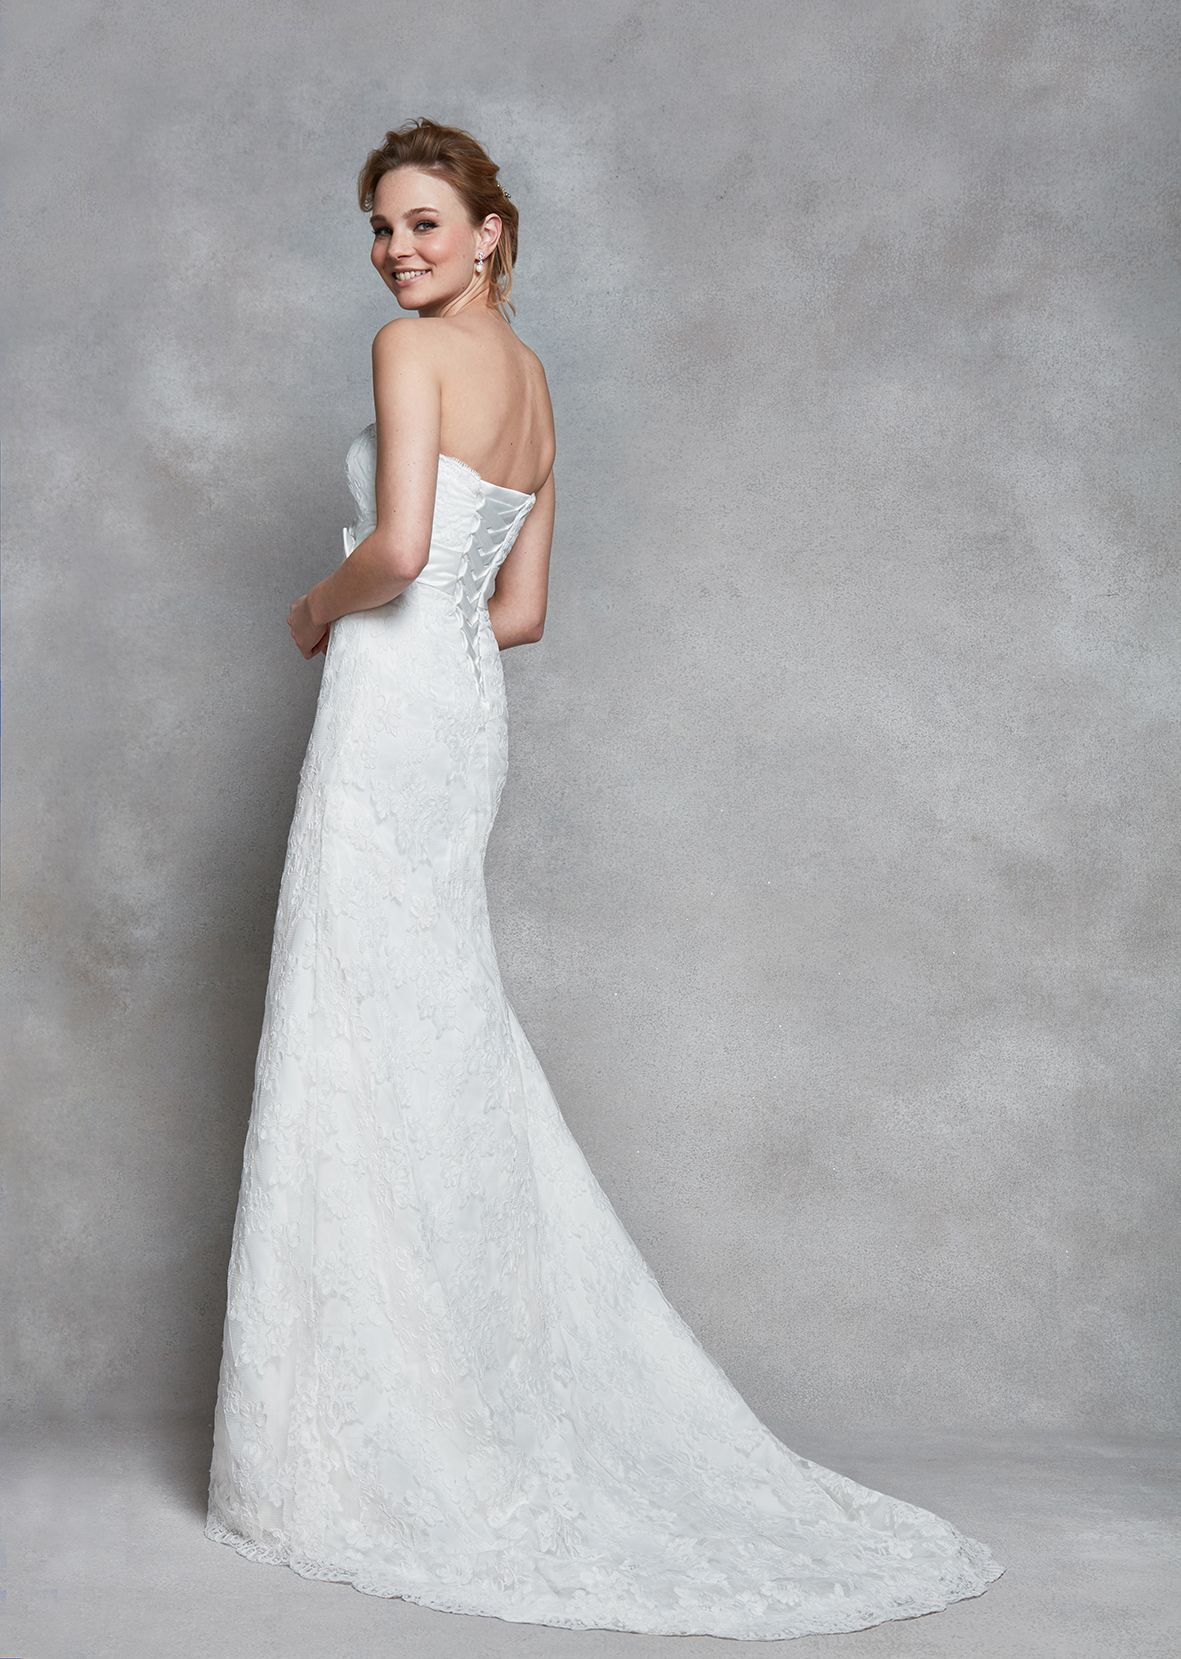 Montezu this simple gown is elegant and classy featuring lace